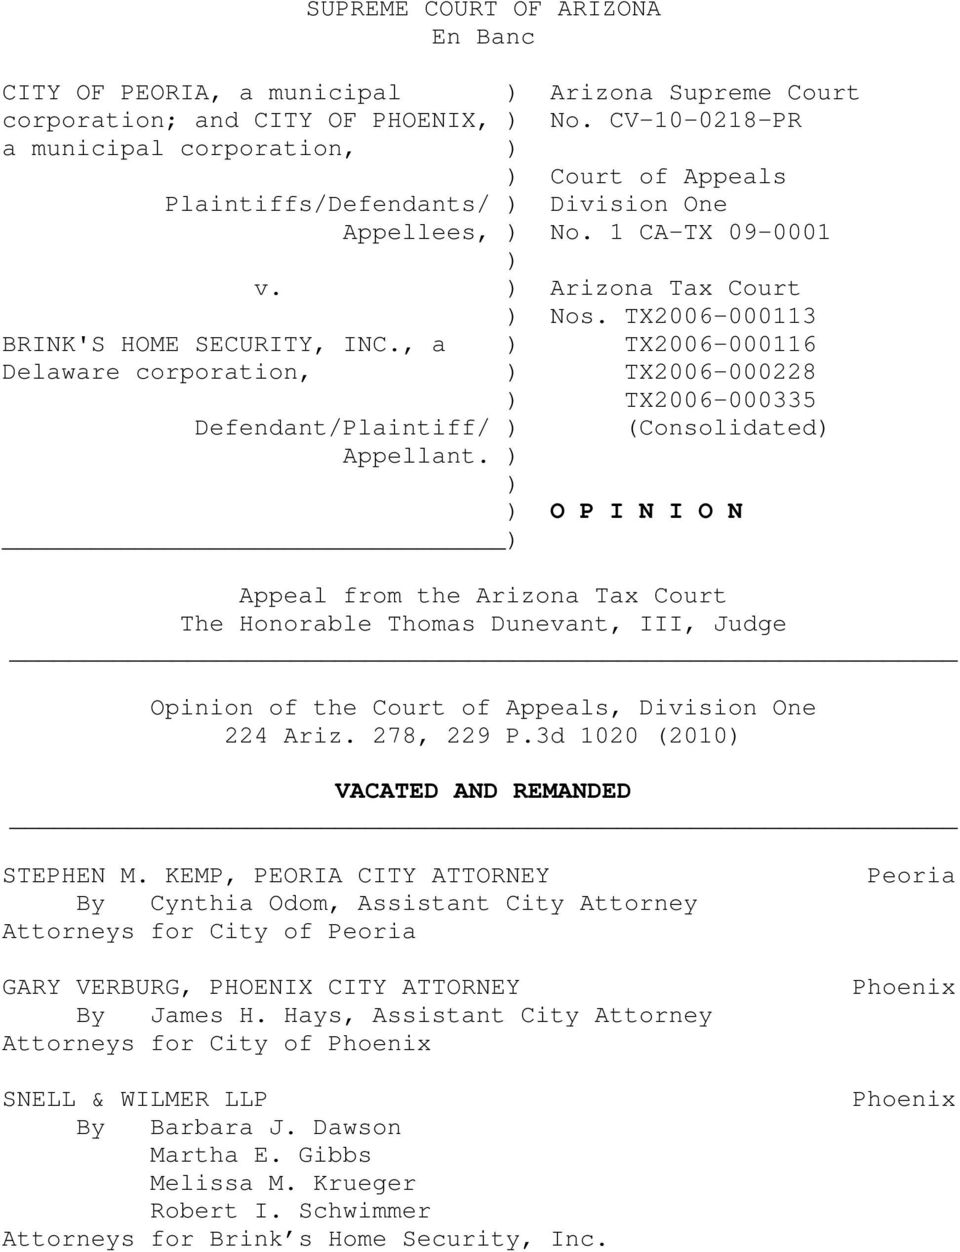 TX2006-000113 BRINK'S HOME SECURITY, INC., a ) TX2006-000116 Delaware corporation, ) TX2006-000228 ) TX2006-000335 Defendant/Plaintiff/ ) (Consolidated) Appellant.